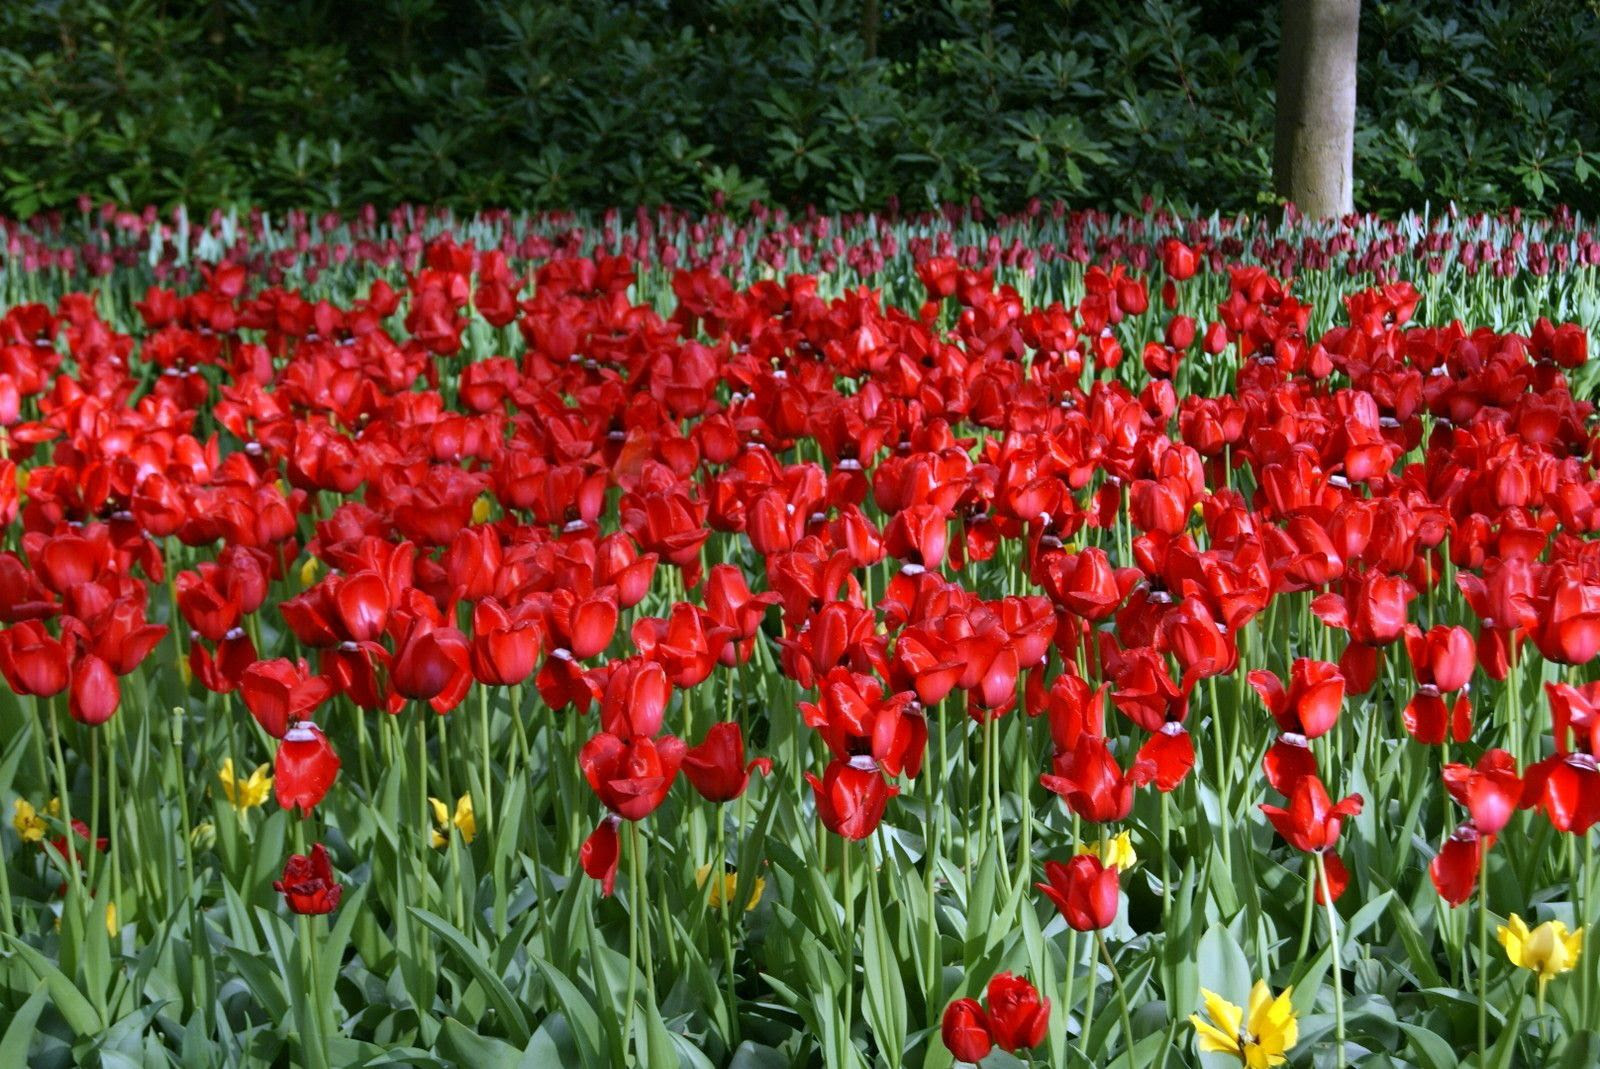 11.2, Beautiful  red tulips